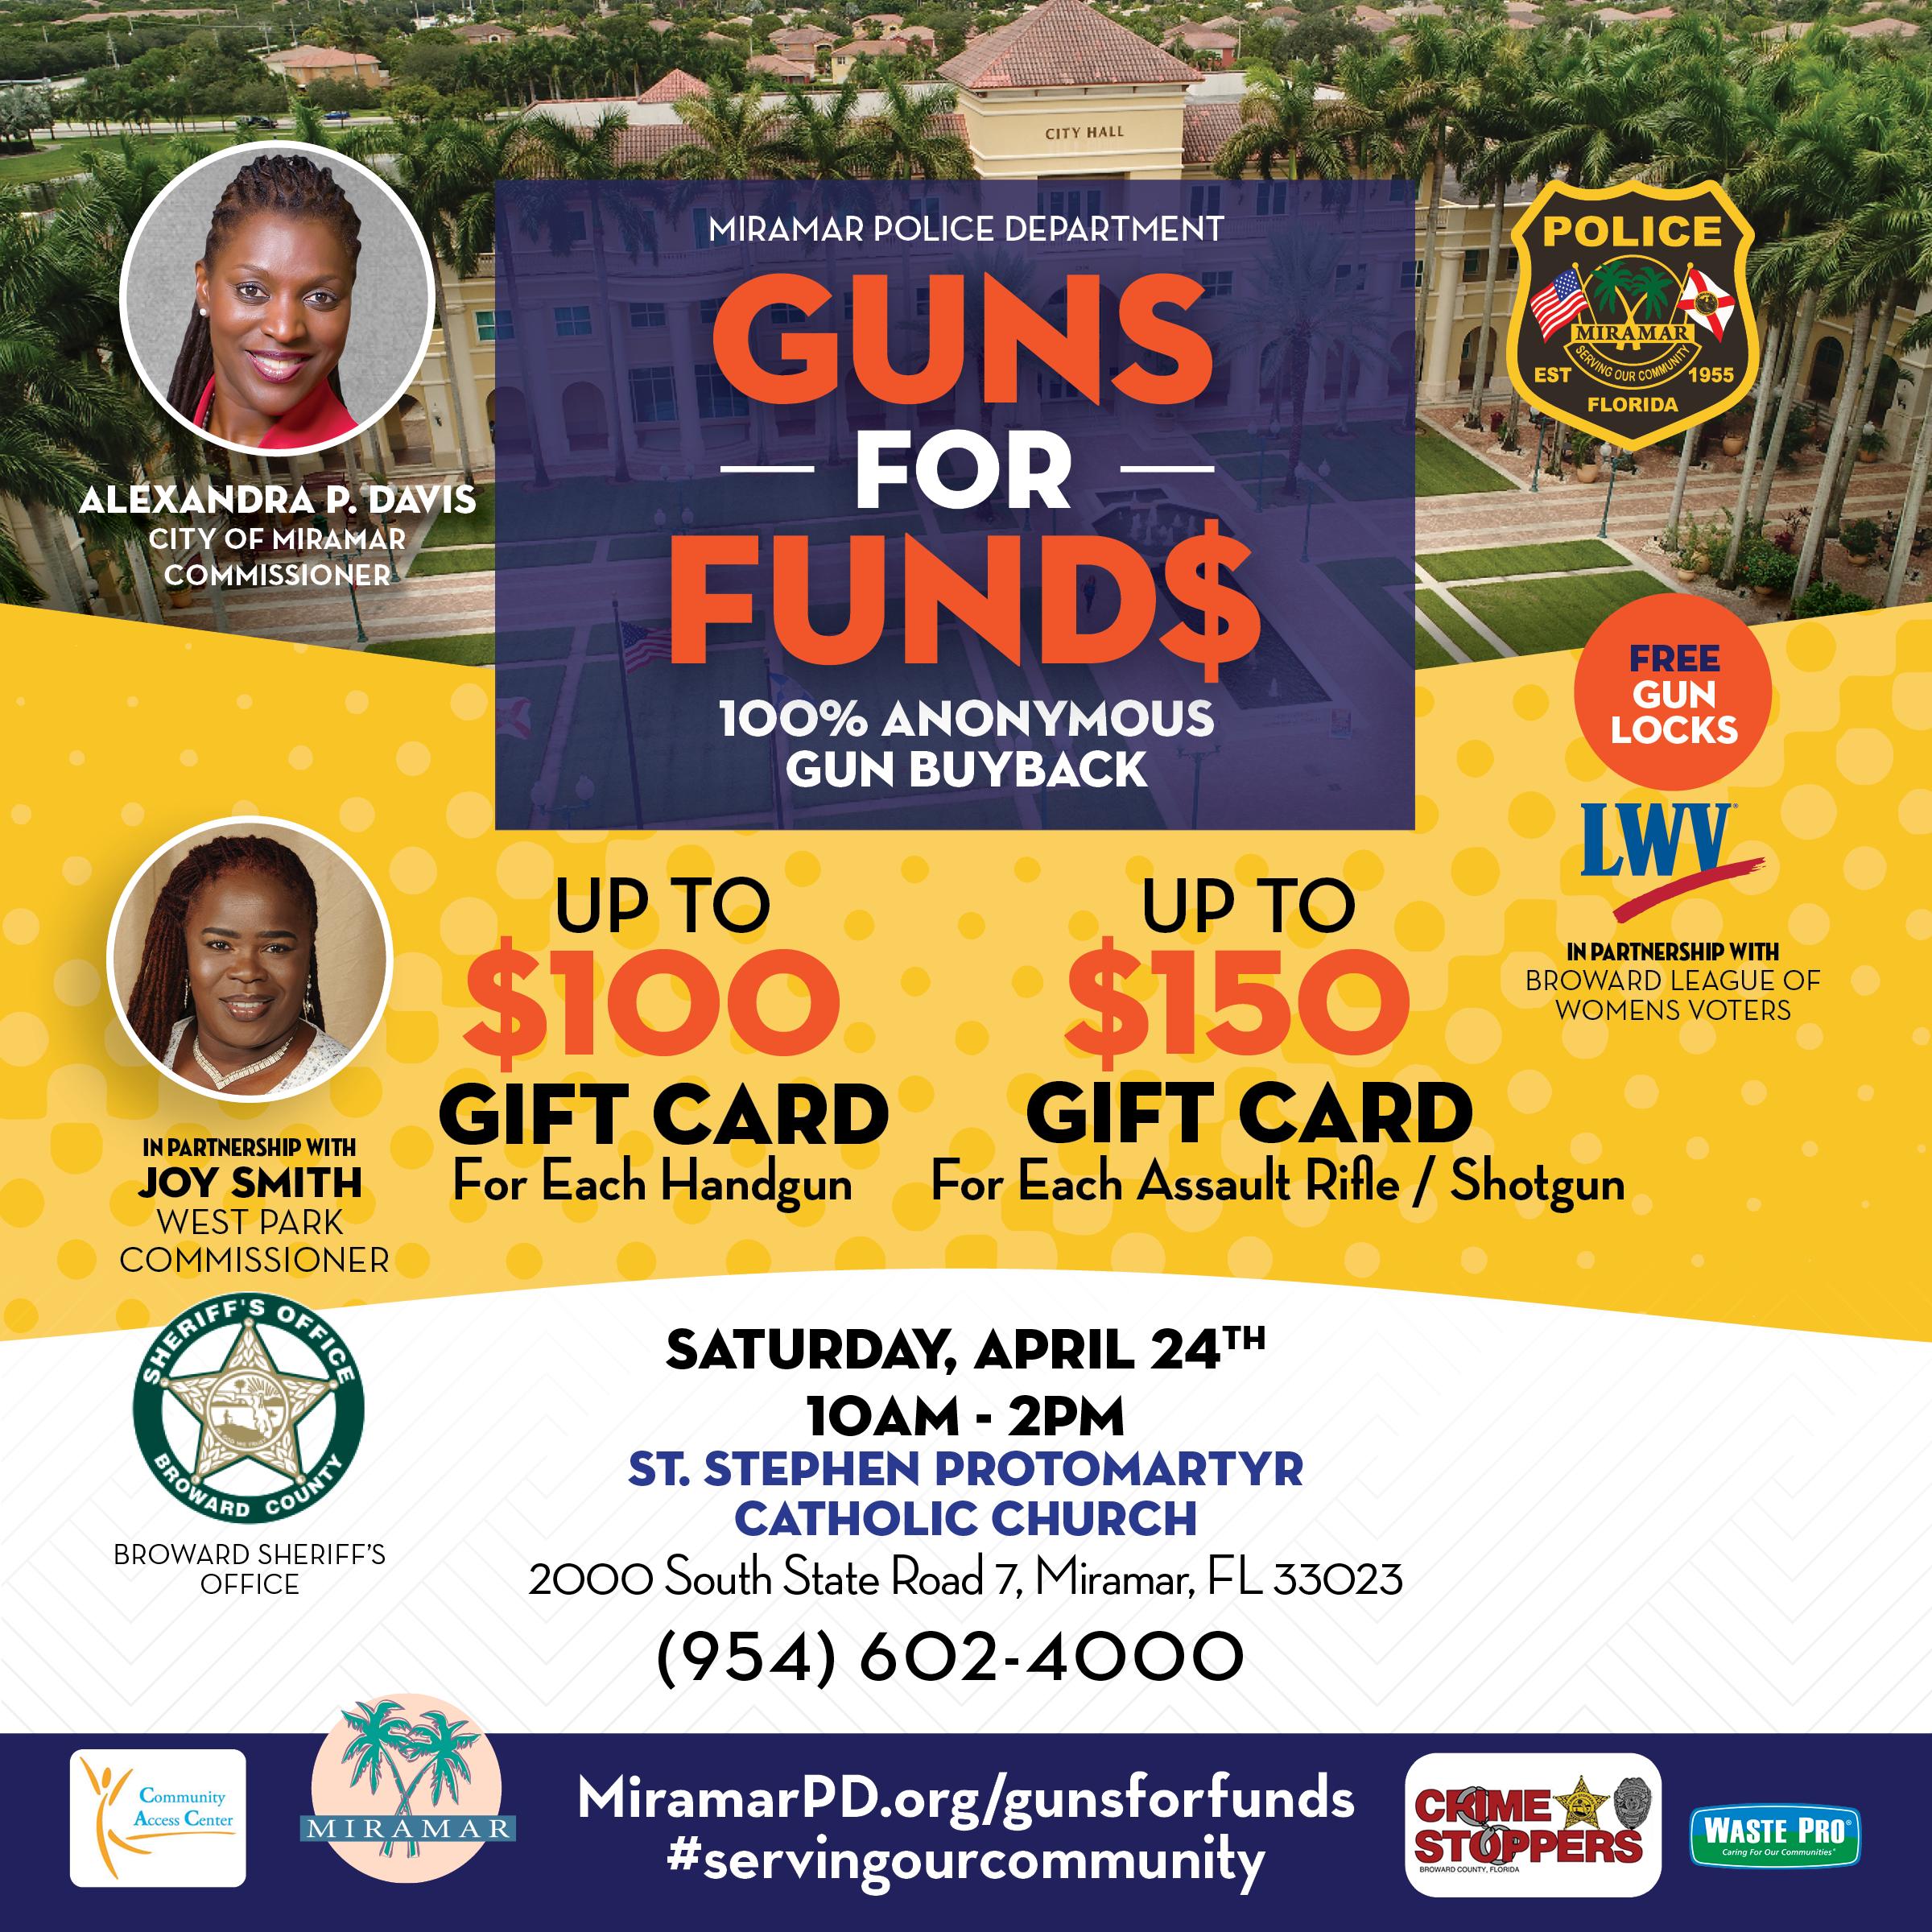 Guns for Funds Event - April 24, 2021 St. Stephen Catholic Church, 2000 S. State Road 7 10 AM - 2PM